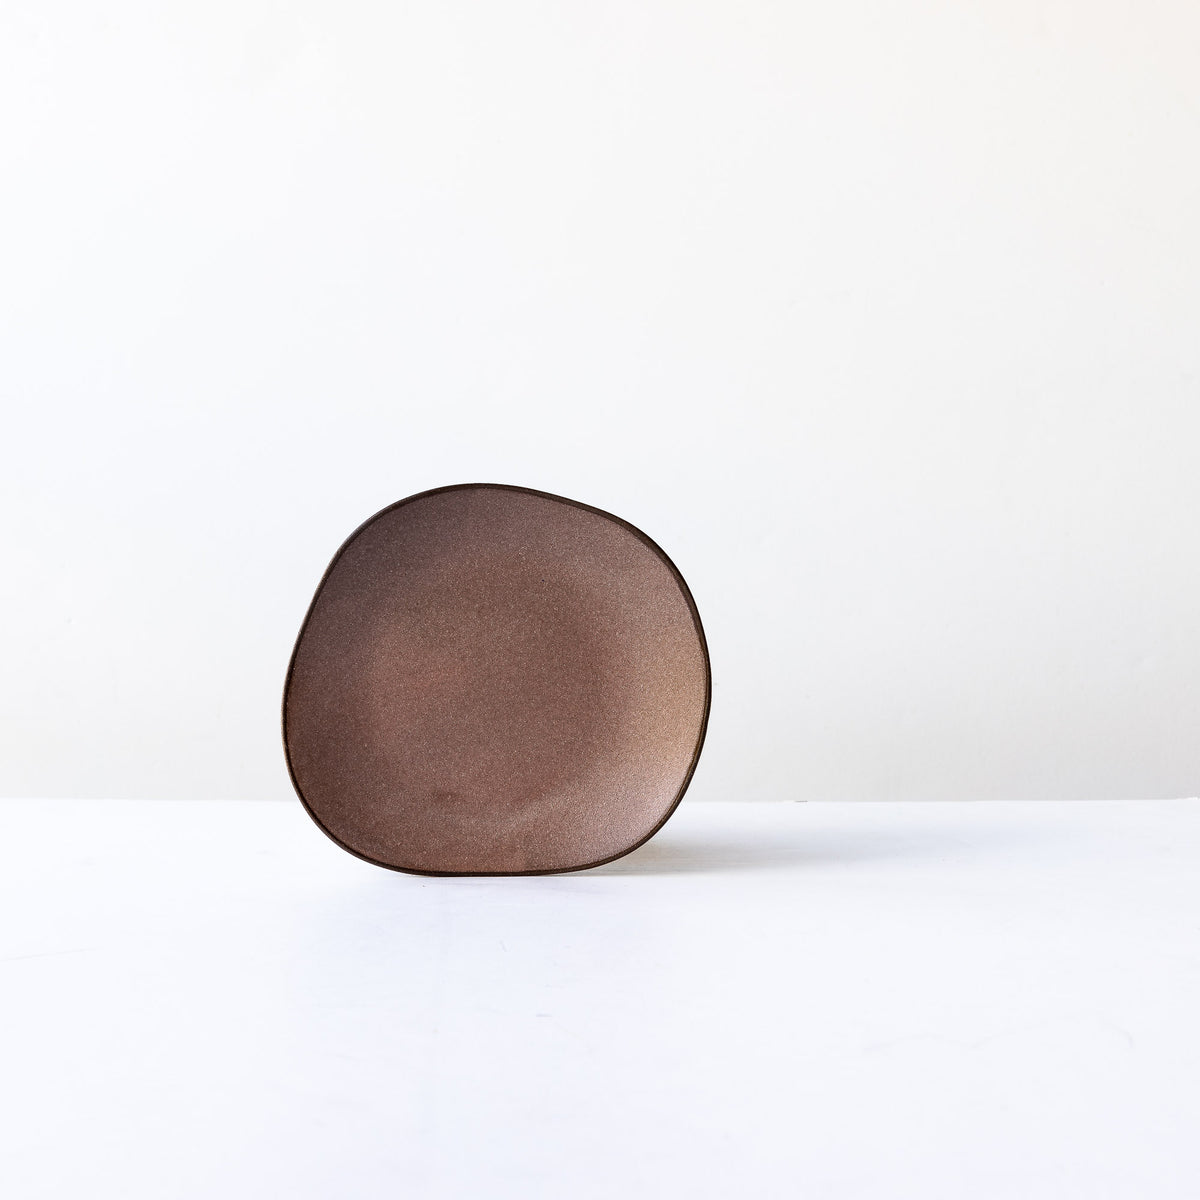 Pink Handcrafted Organic Shaped Small Stoneware Plate - Sold by Chic & Basta